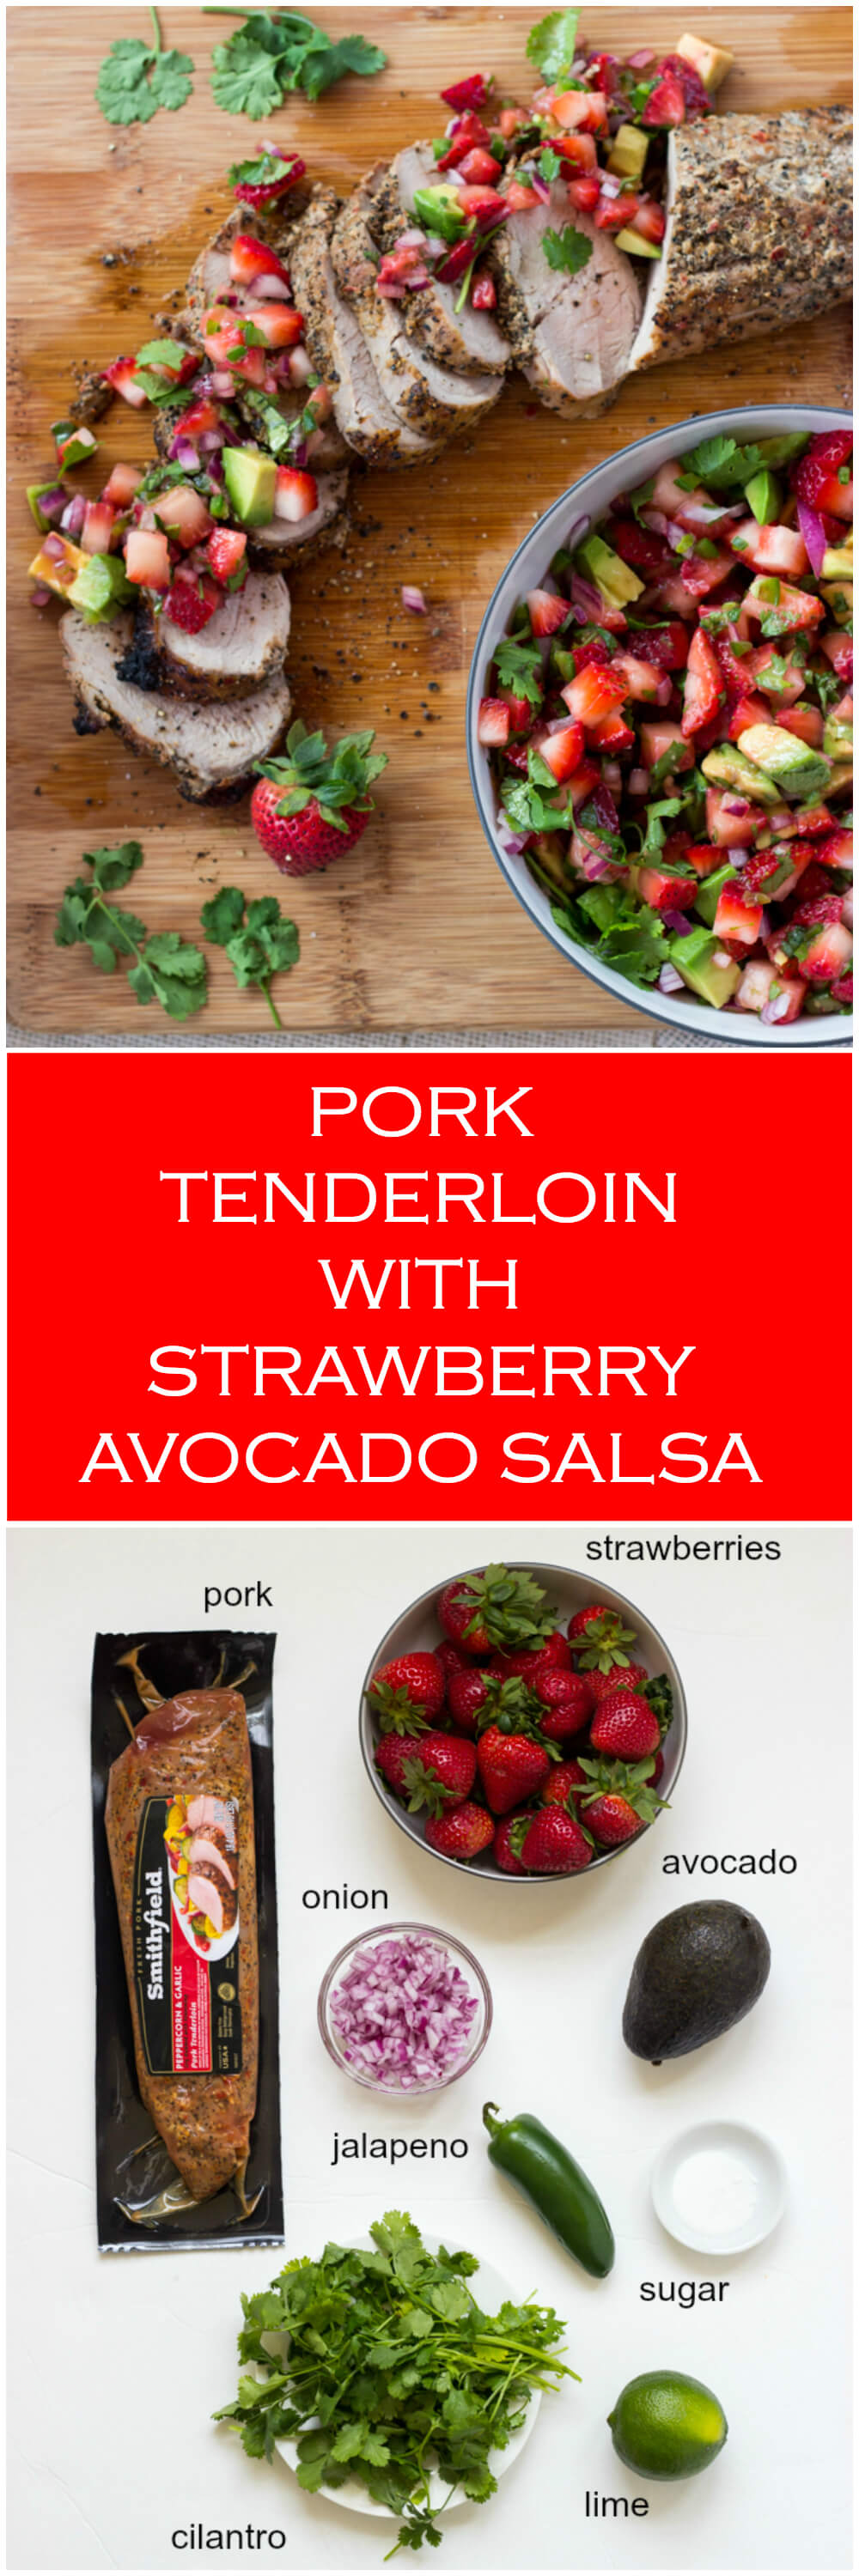 Peppercorn Garlic Pork Tenderloin with Strawberry Avocado Salsa | littlebroken.com @littlebroken